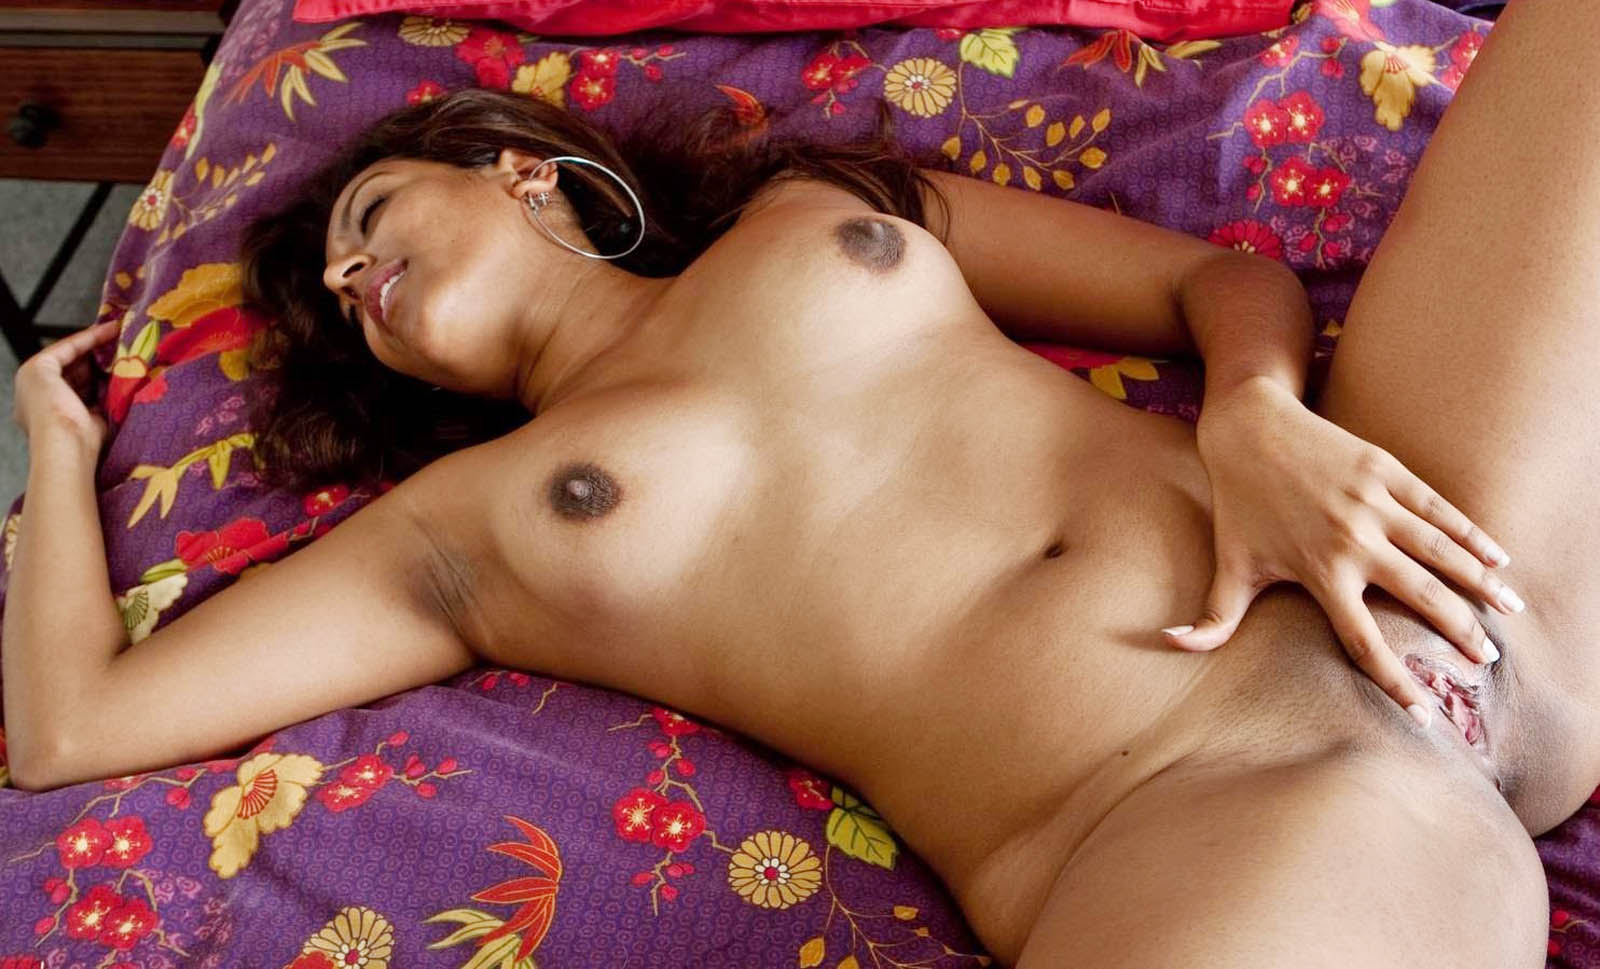 girl chudai ki desi Indian